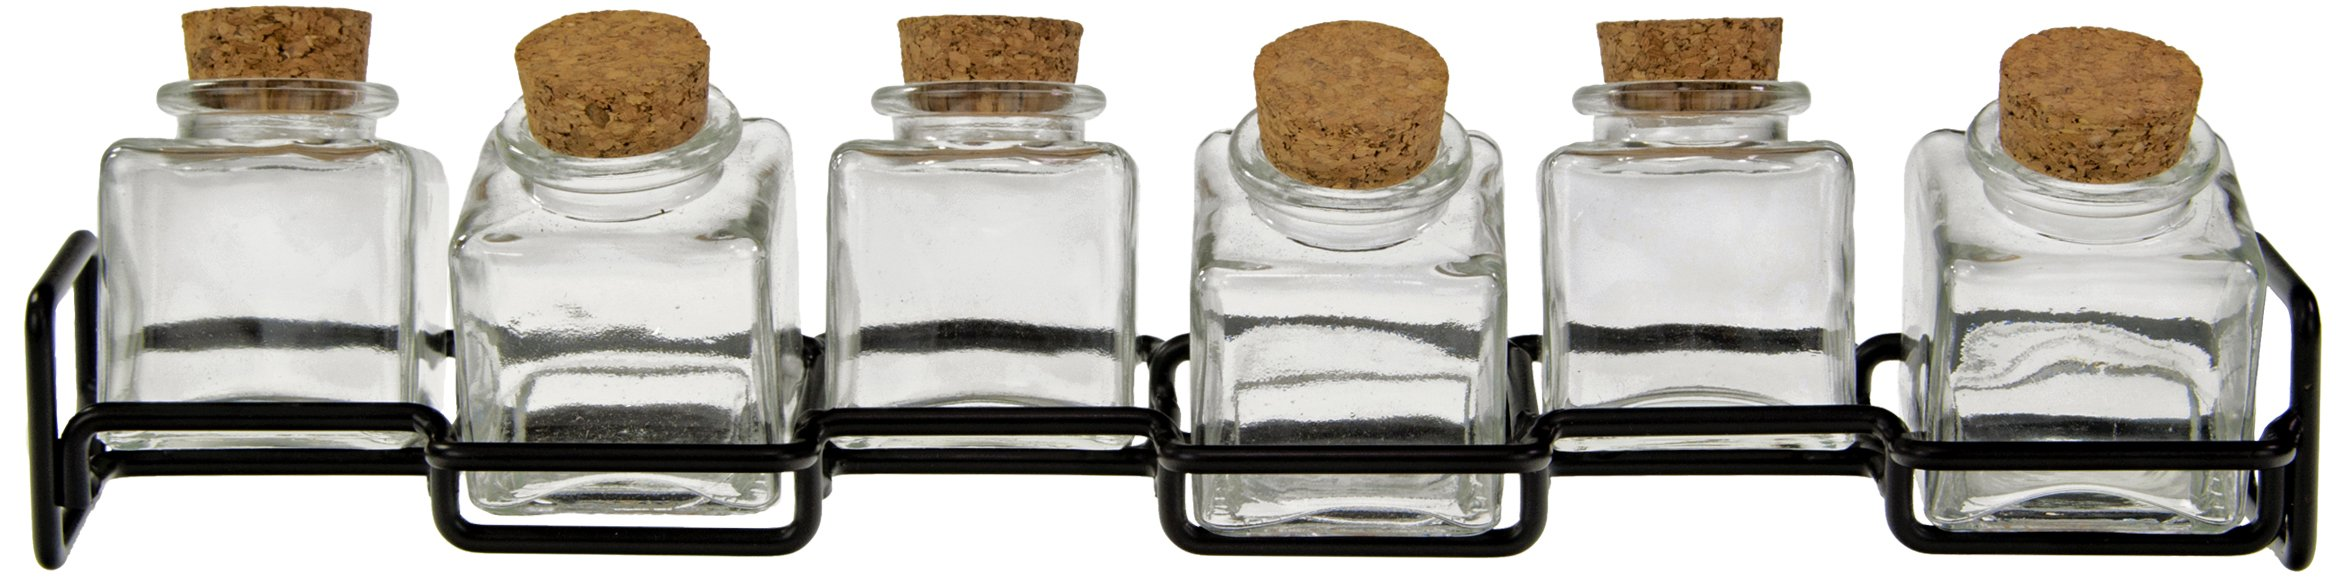 Couronne Company M224-6156 Horizontal Metal Spice Rack with Square Jars, 3 1/2'', Clear, 1 Piece